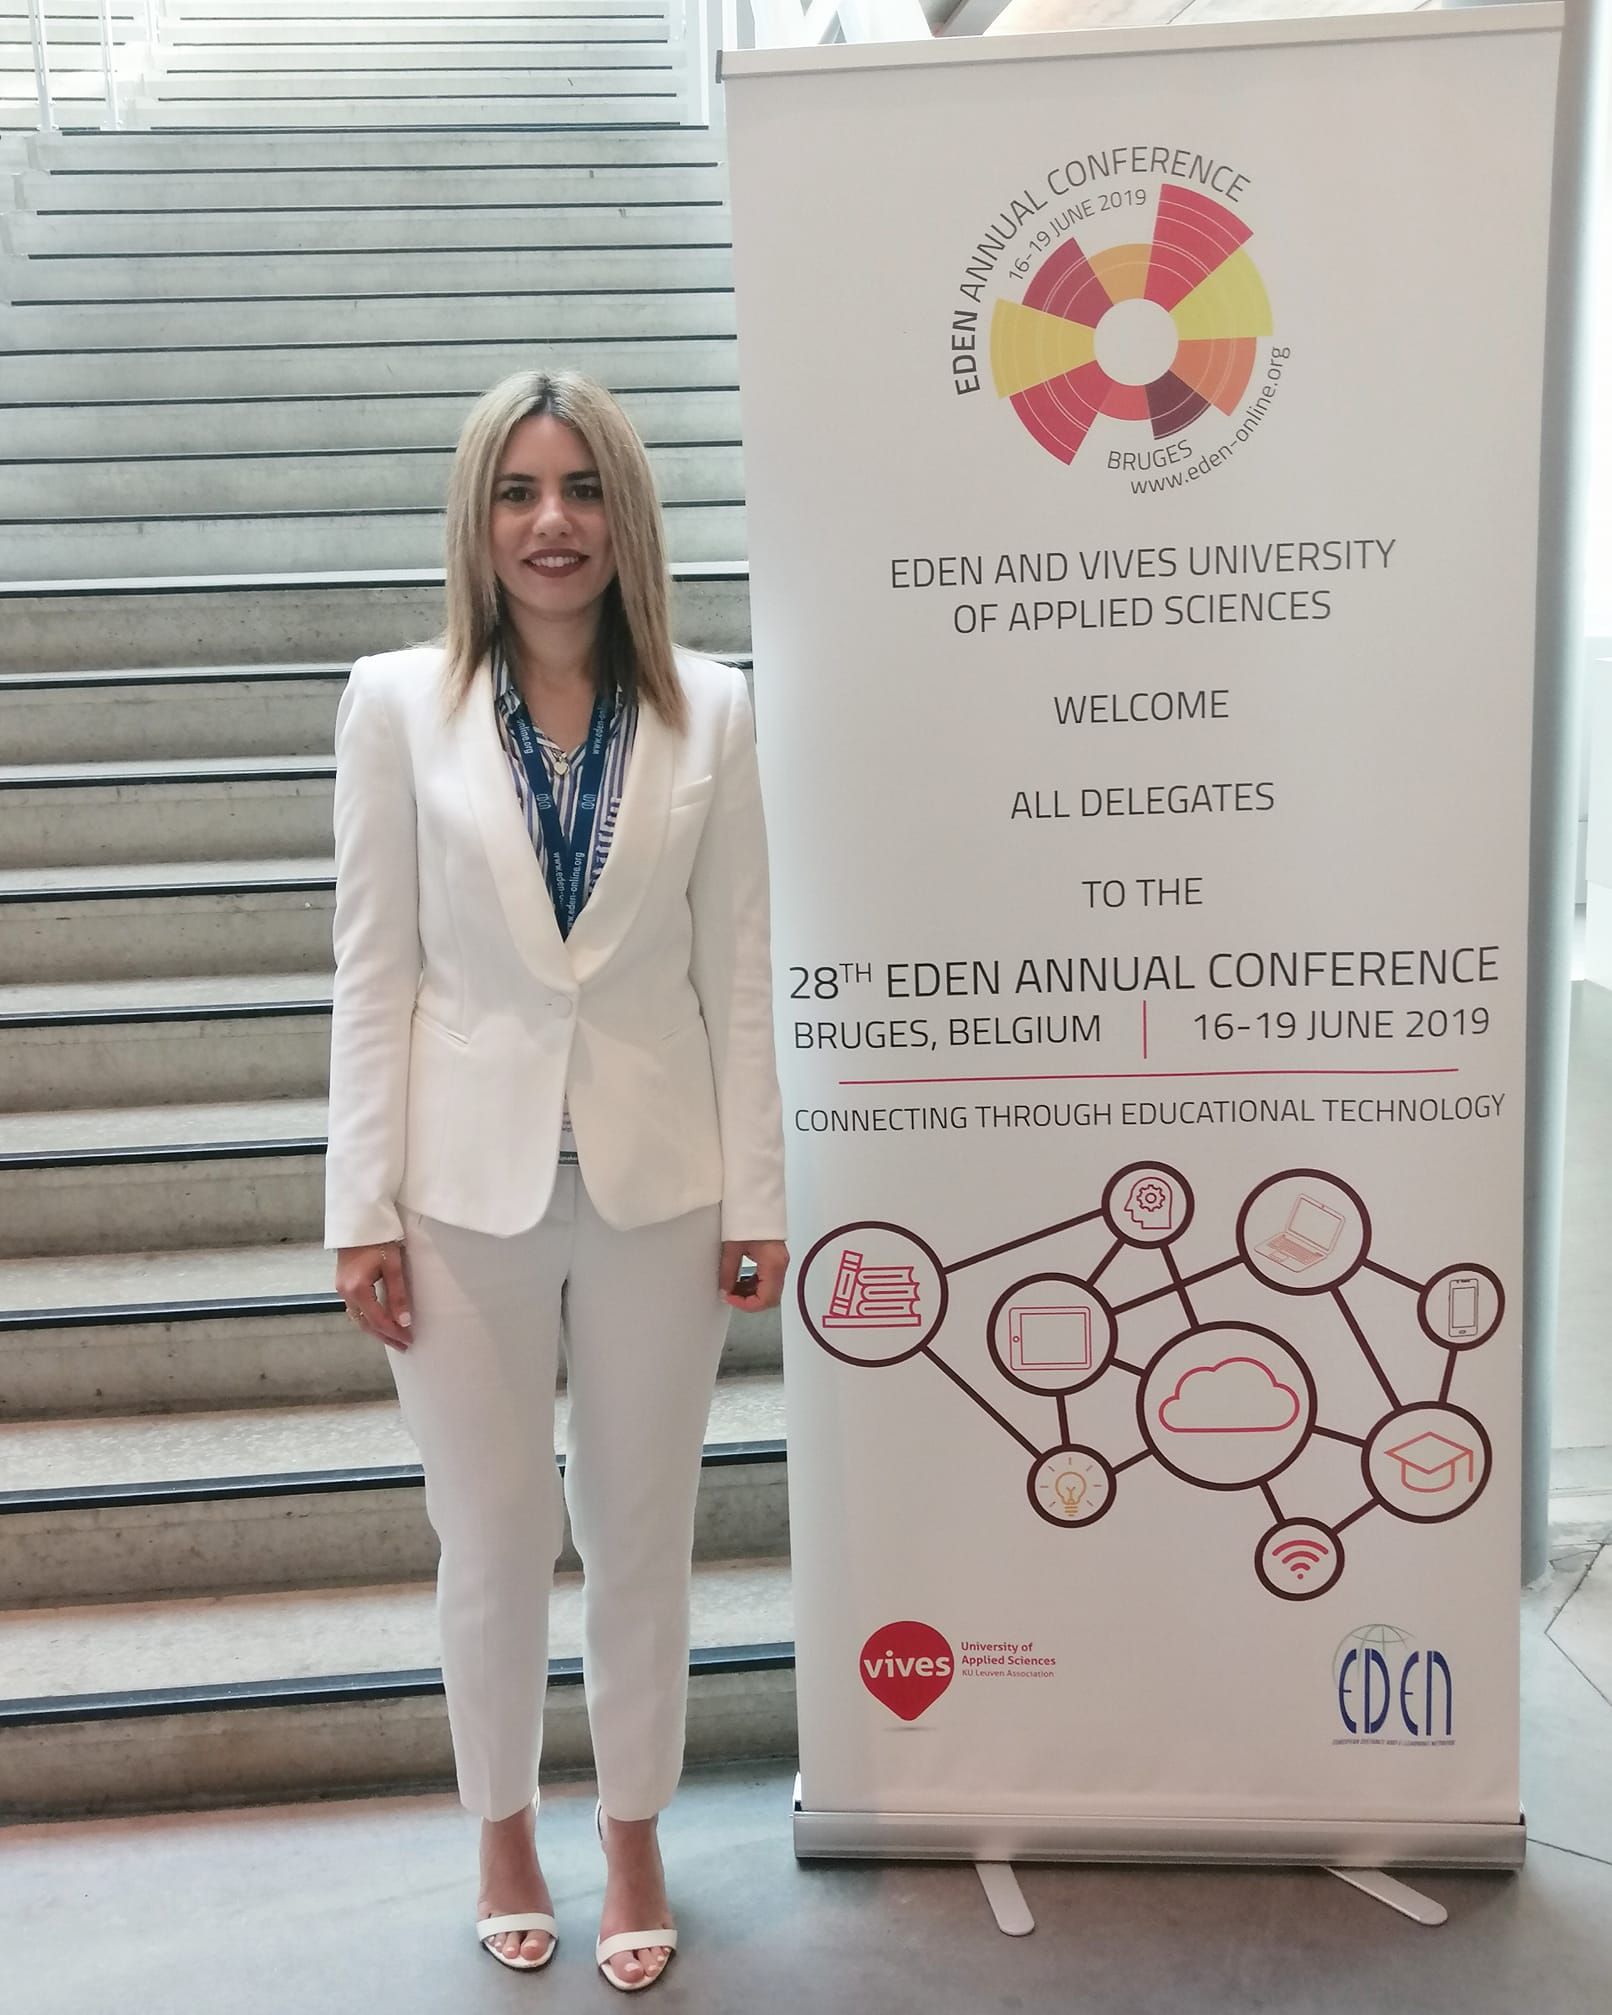 Angeliki standing next to the rollup of the EDEN conference